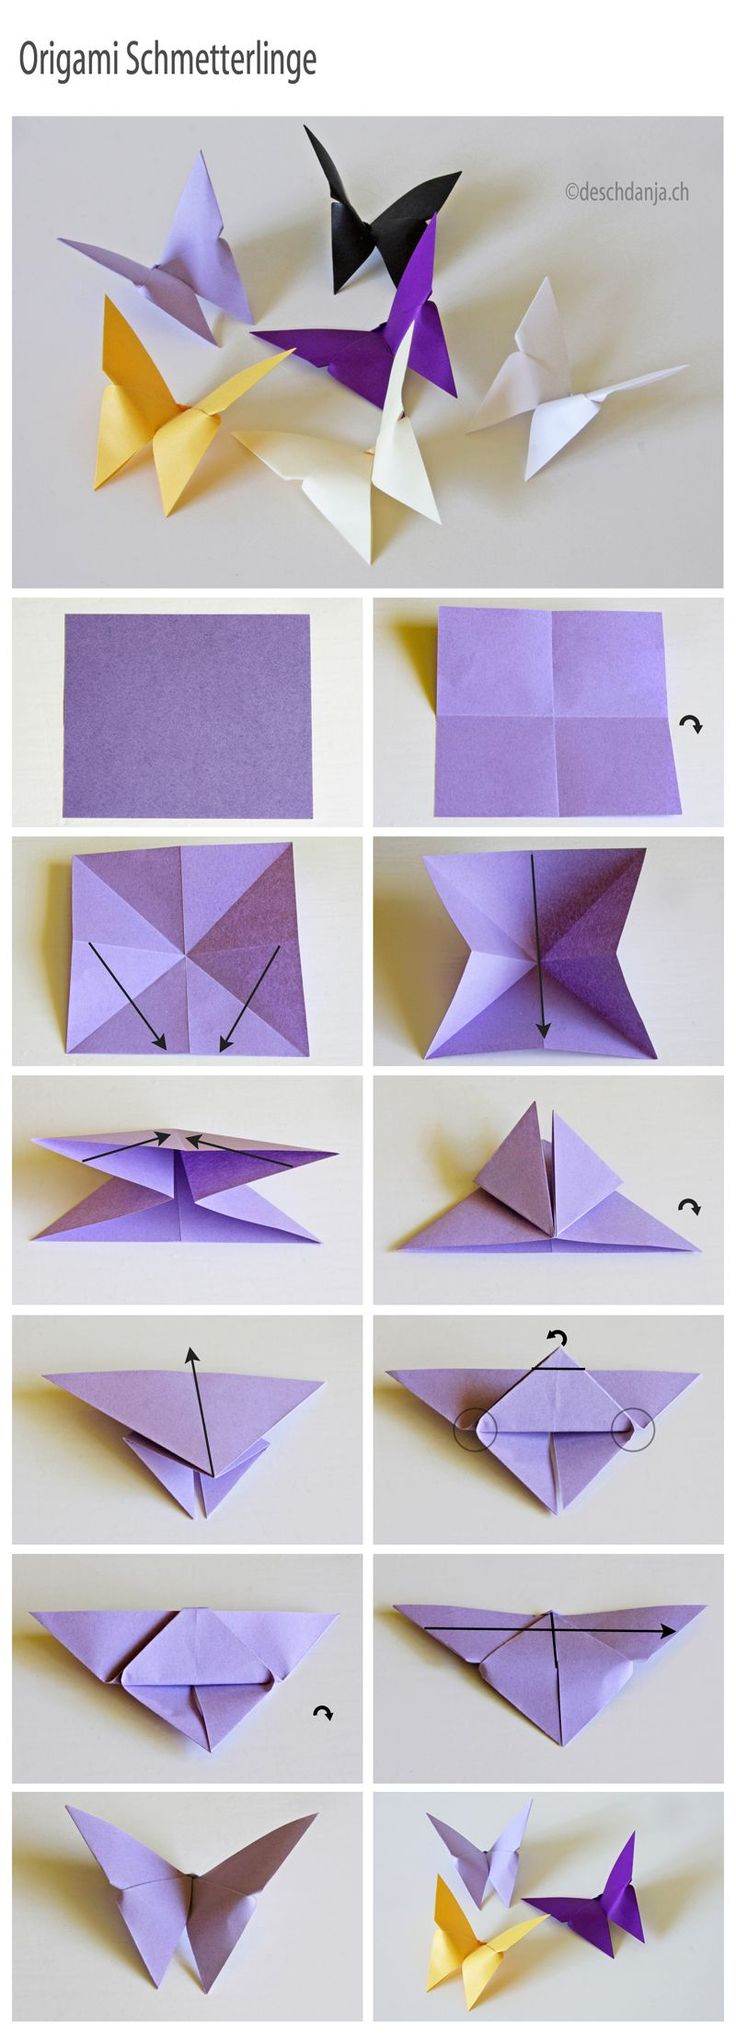 How to make Origami Butterflies, www.deschdanja.ch